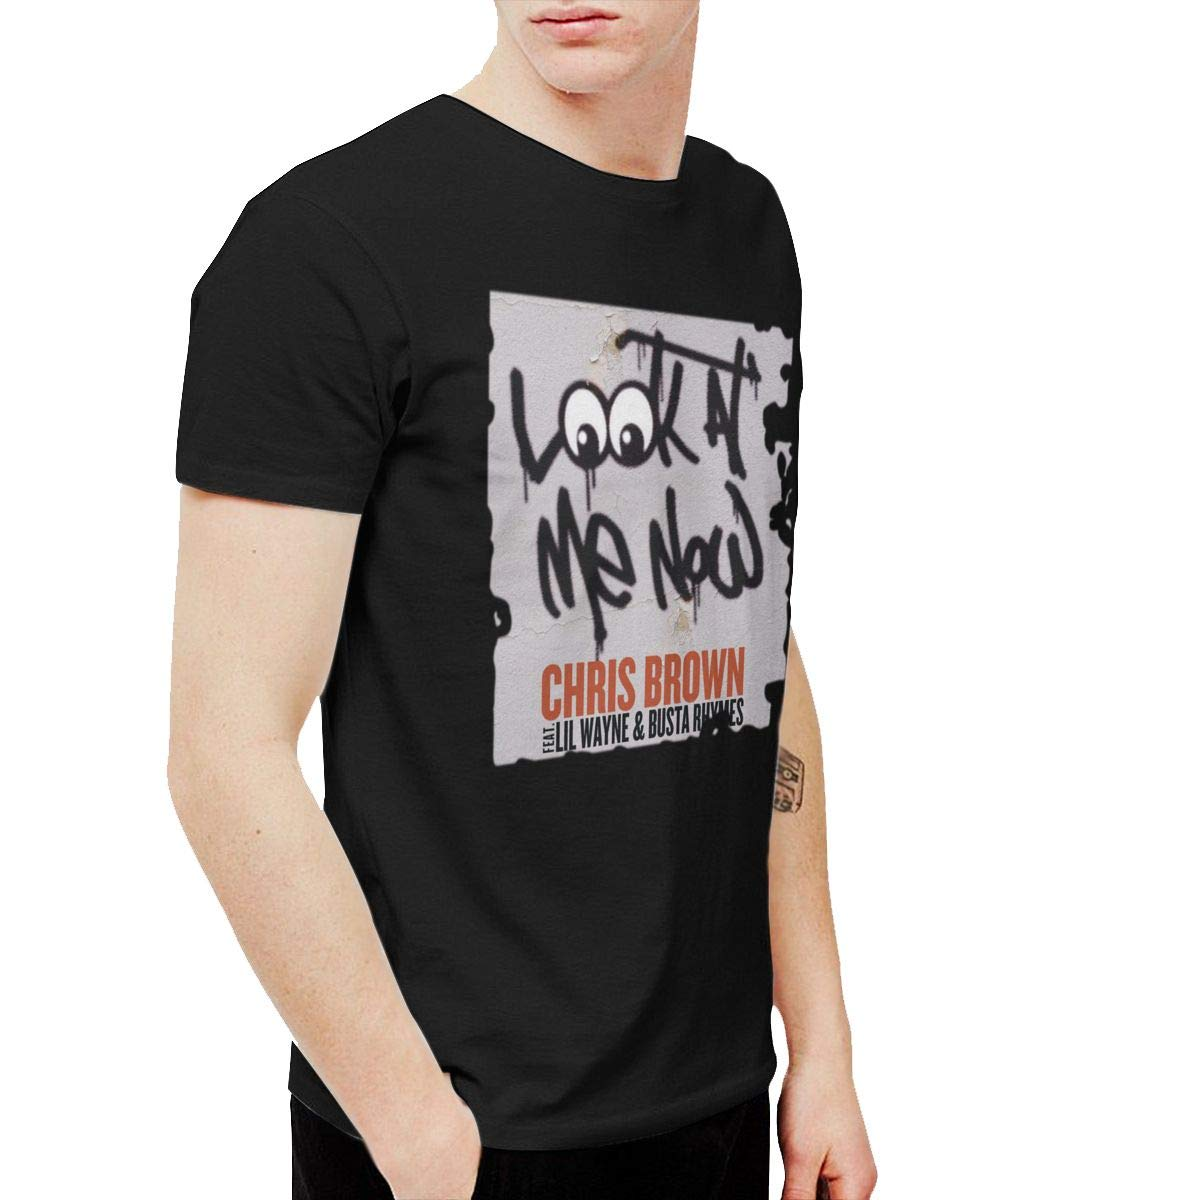 Qybfepbegw Chris Brown Look At Me Now Humor Party T Shirts Short Sleeve 1612